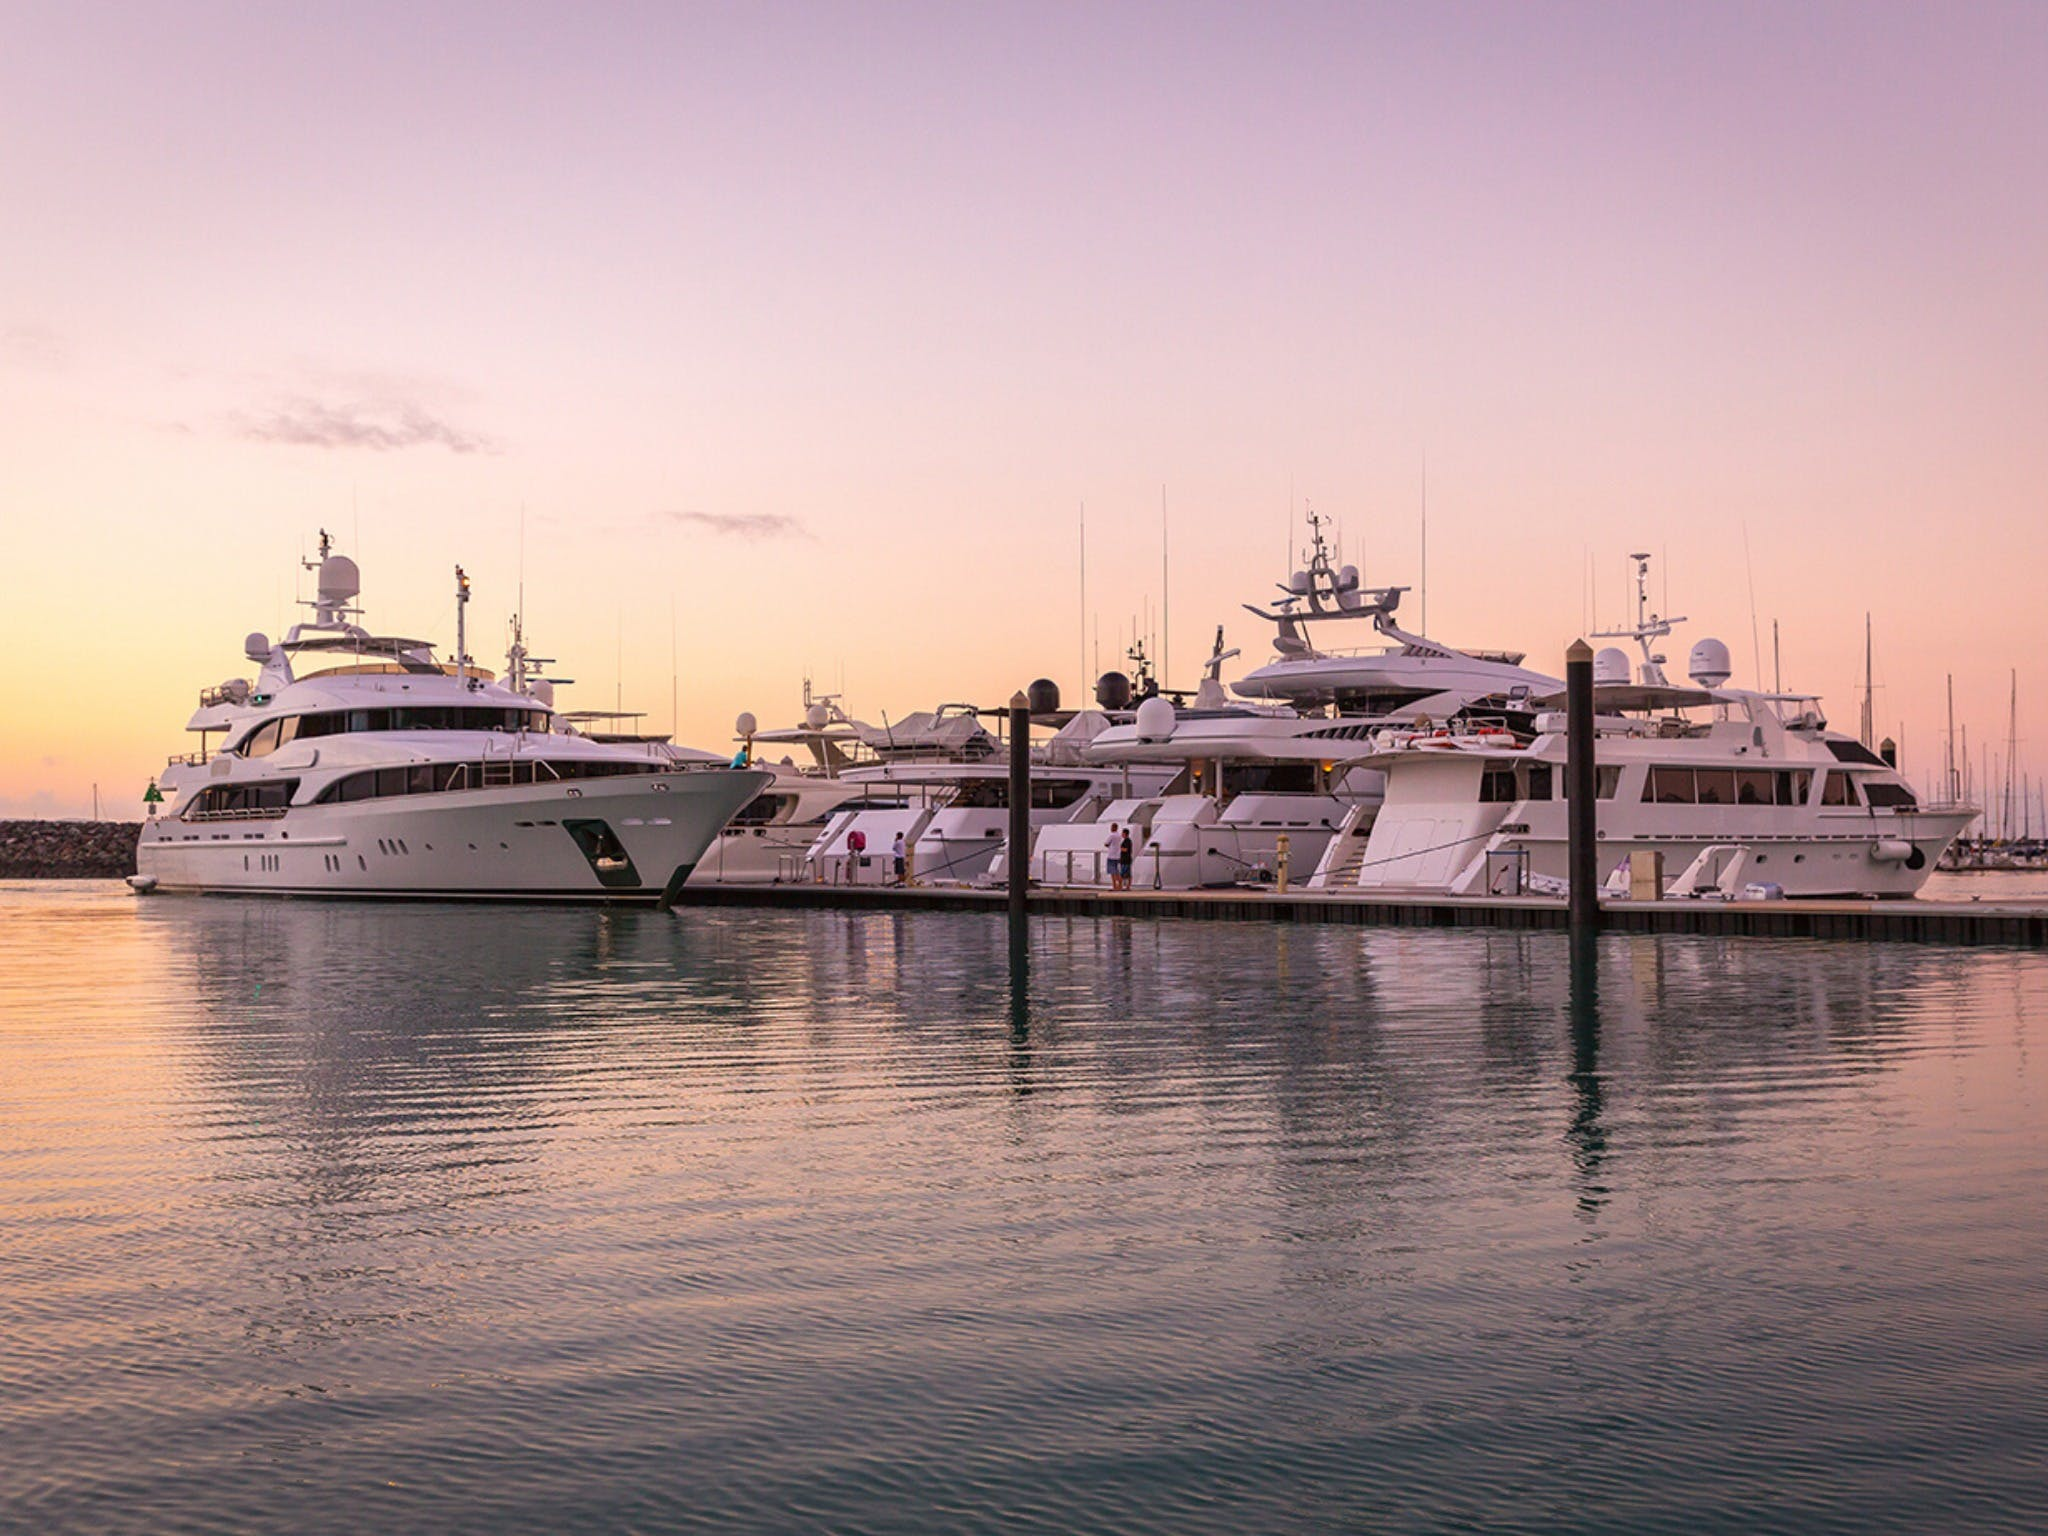 Australian Superyacht Rendezvous - Great Barrier Reef edition - Lennox Head Accommodation